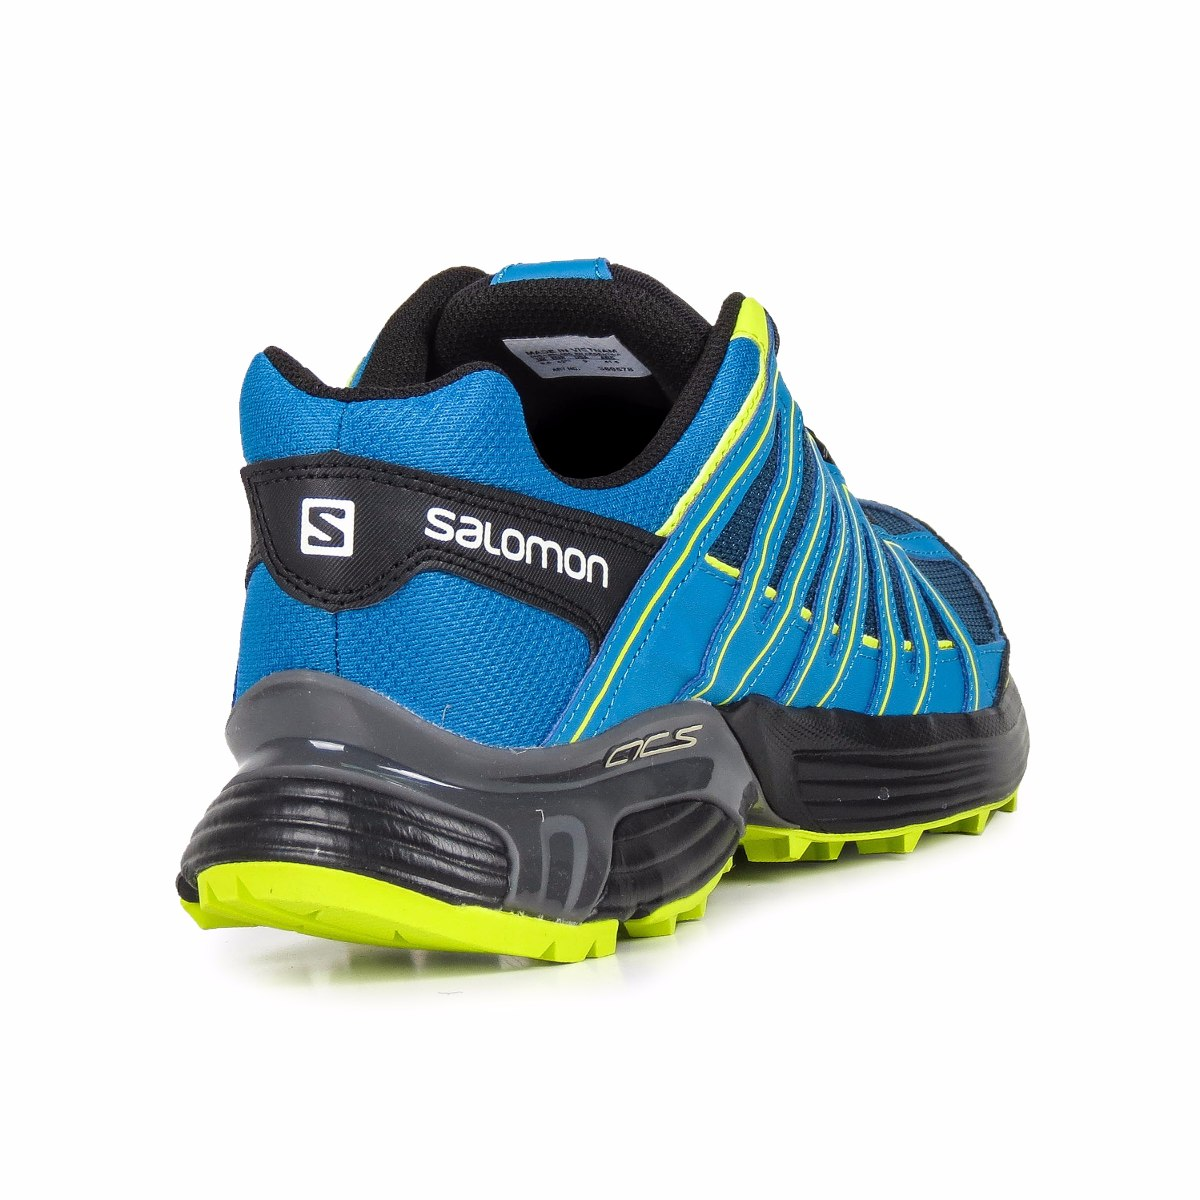 Zapatillas - Salomon Zapatillas de Running Salomon Xt Taurus